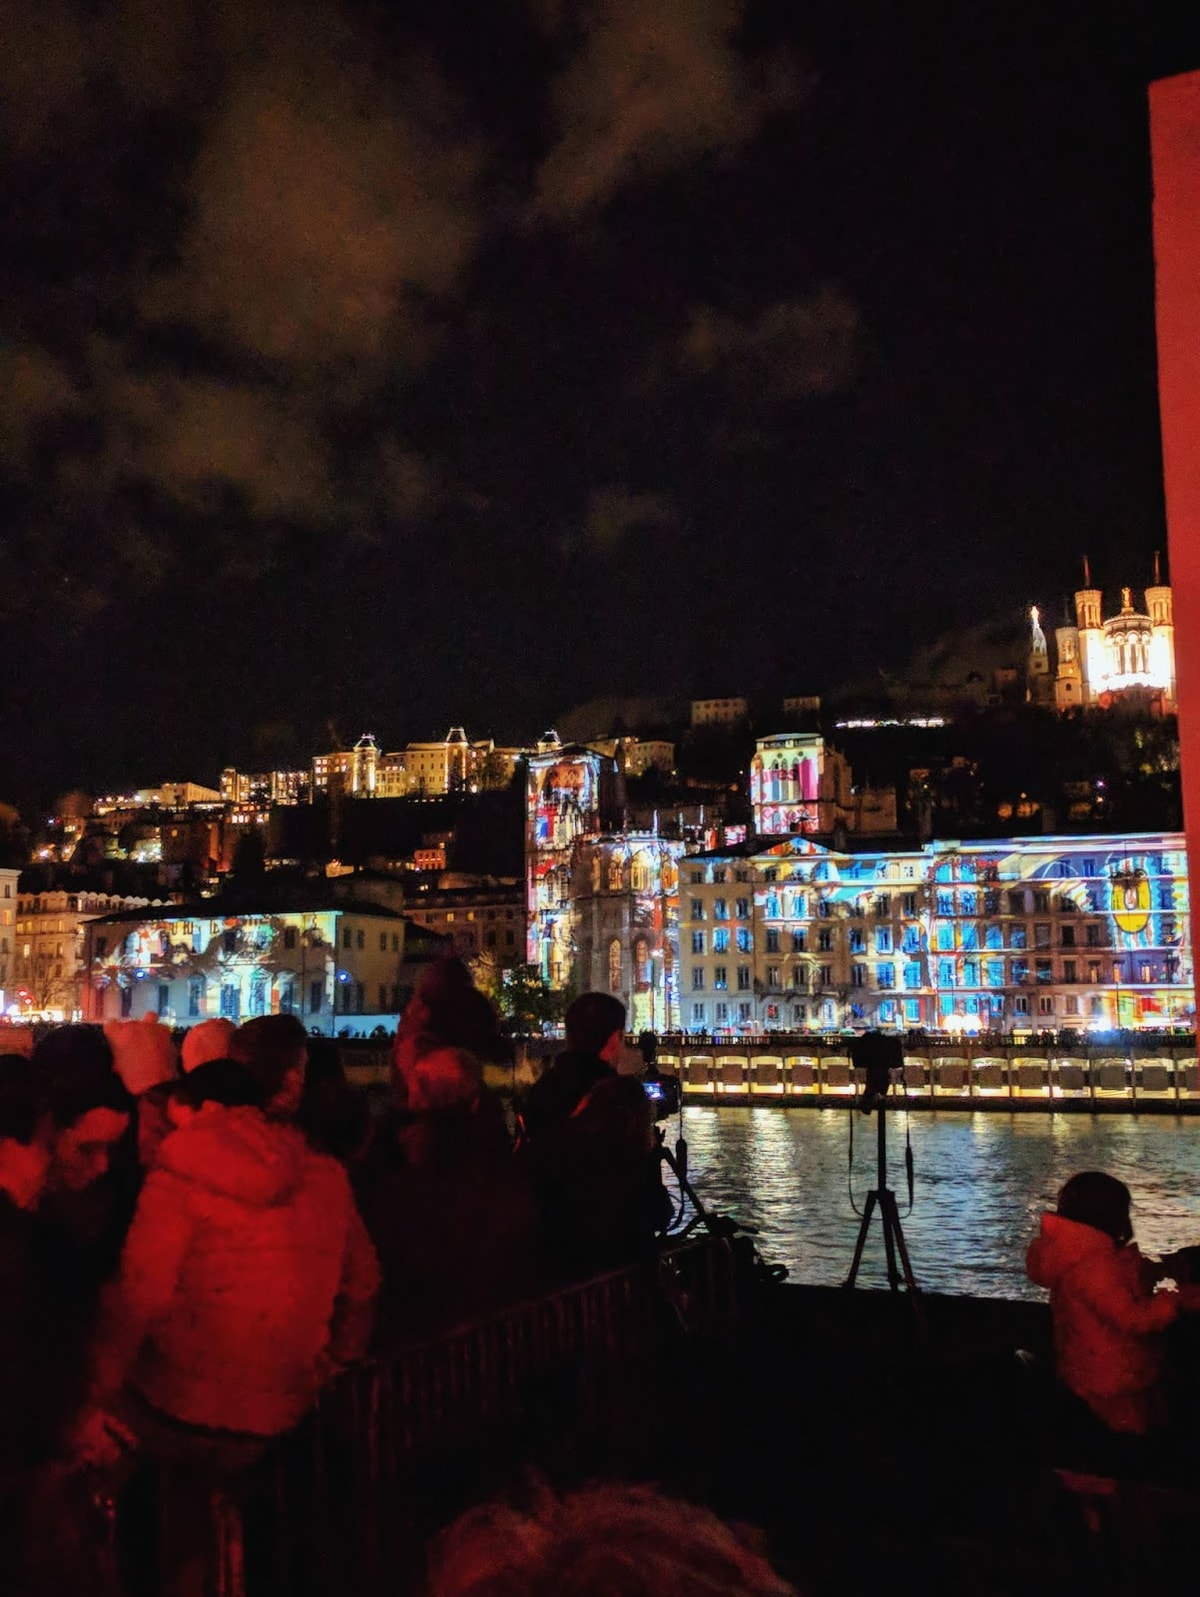 lyon festival of lights crowd by the river